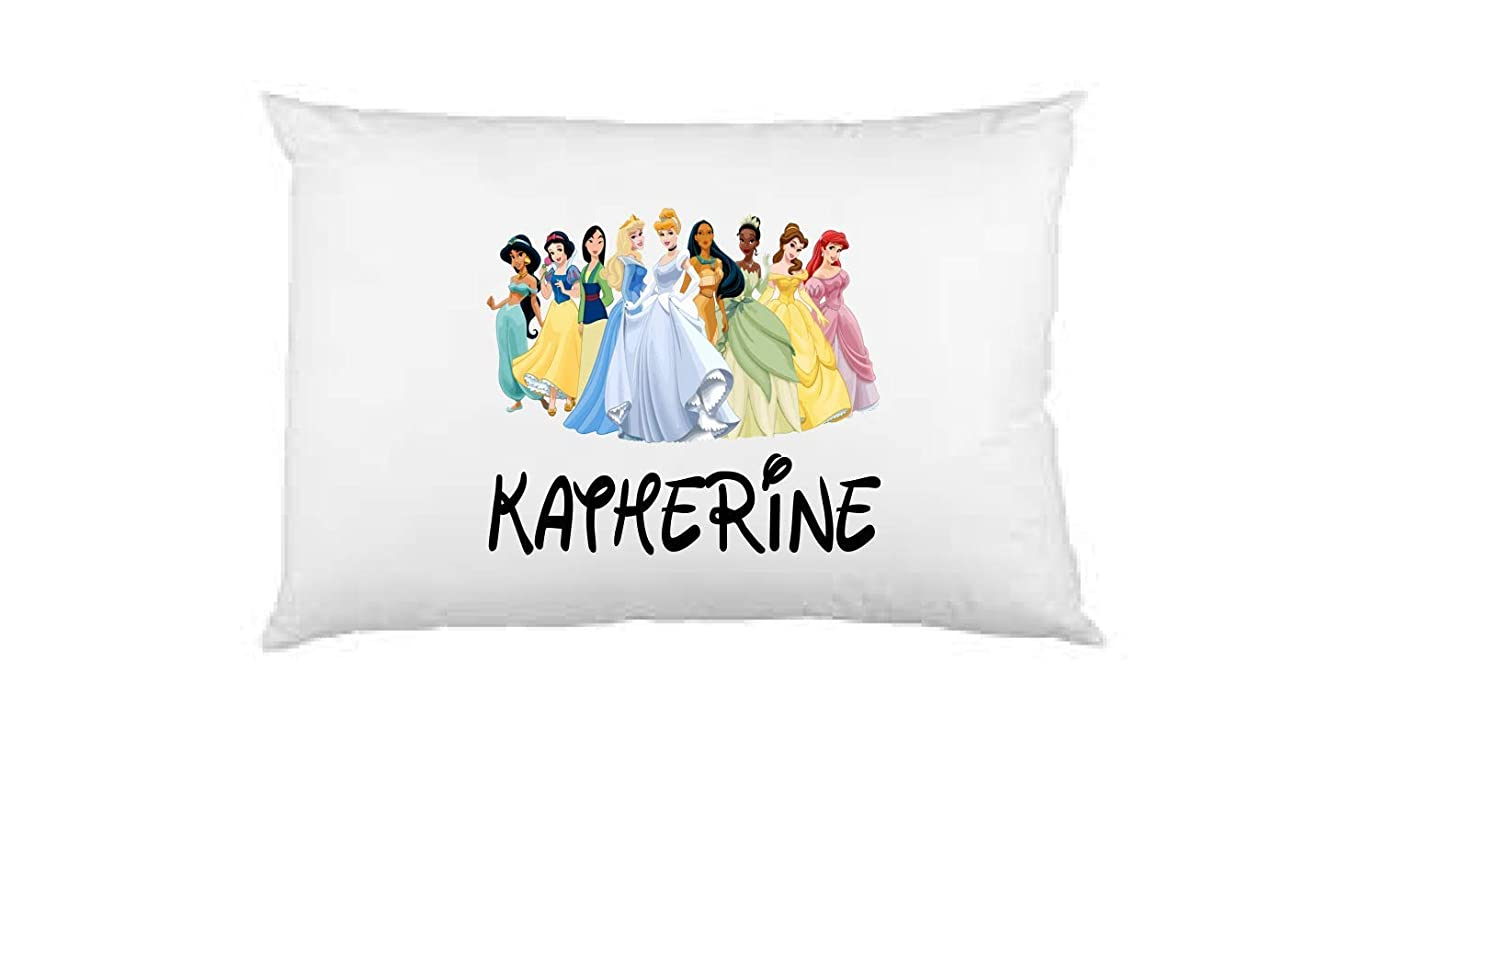 princess pillow case, personalized pillow case, birthday gift, Children's Pillow Case, Kid's Bedroom, Toddler Room, Baby Room, girl's bedroom Children's Pillow Case Kid's Bedroom girl's bedroom